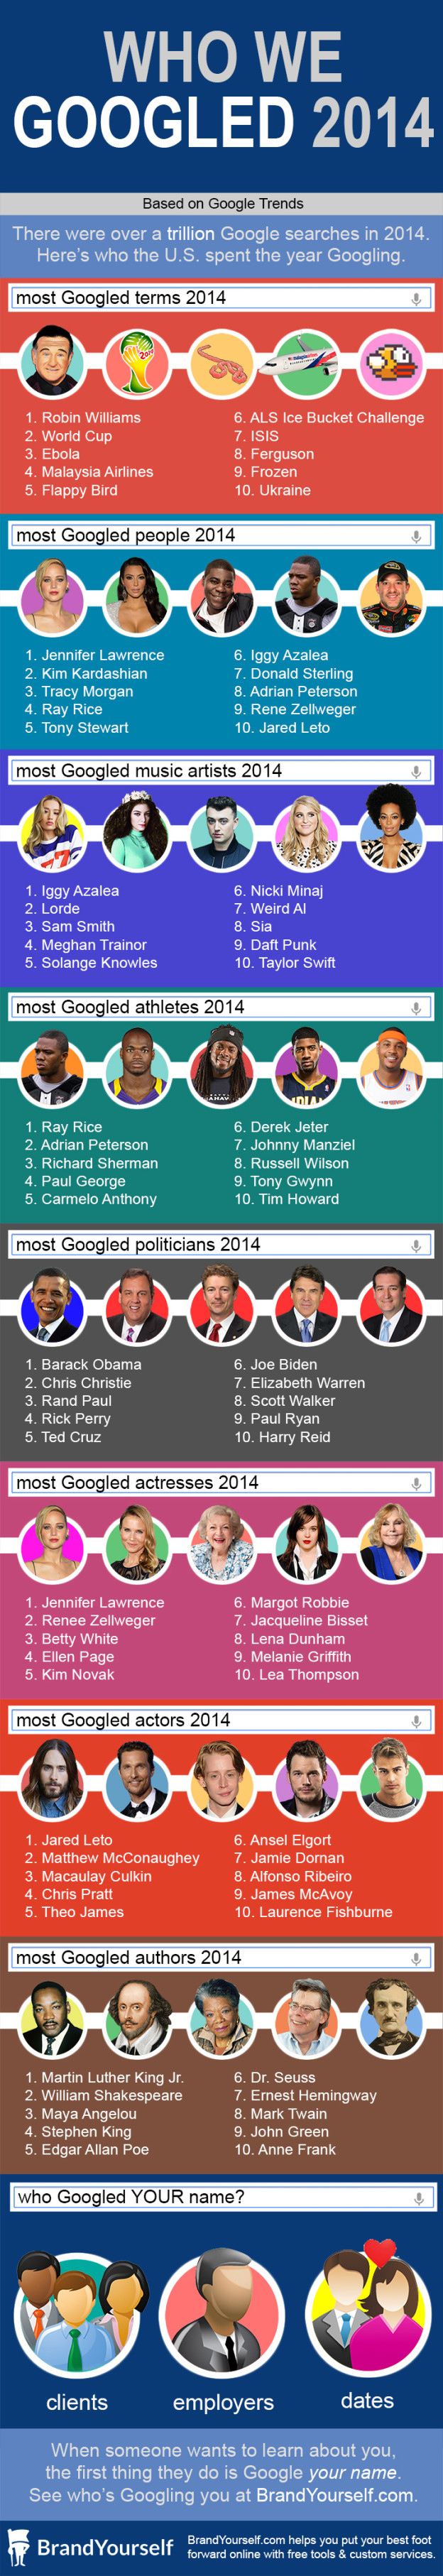 Who-We-Googled-2014-Infographic